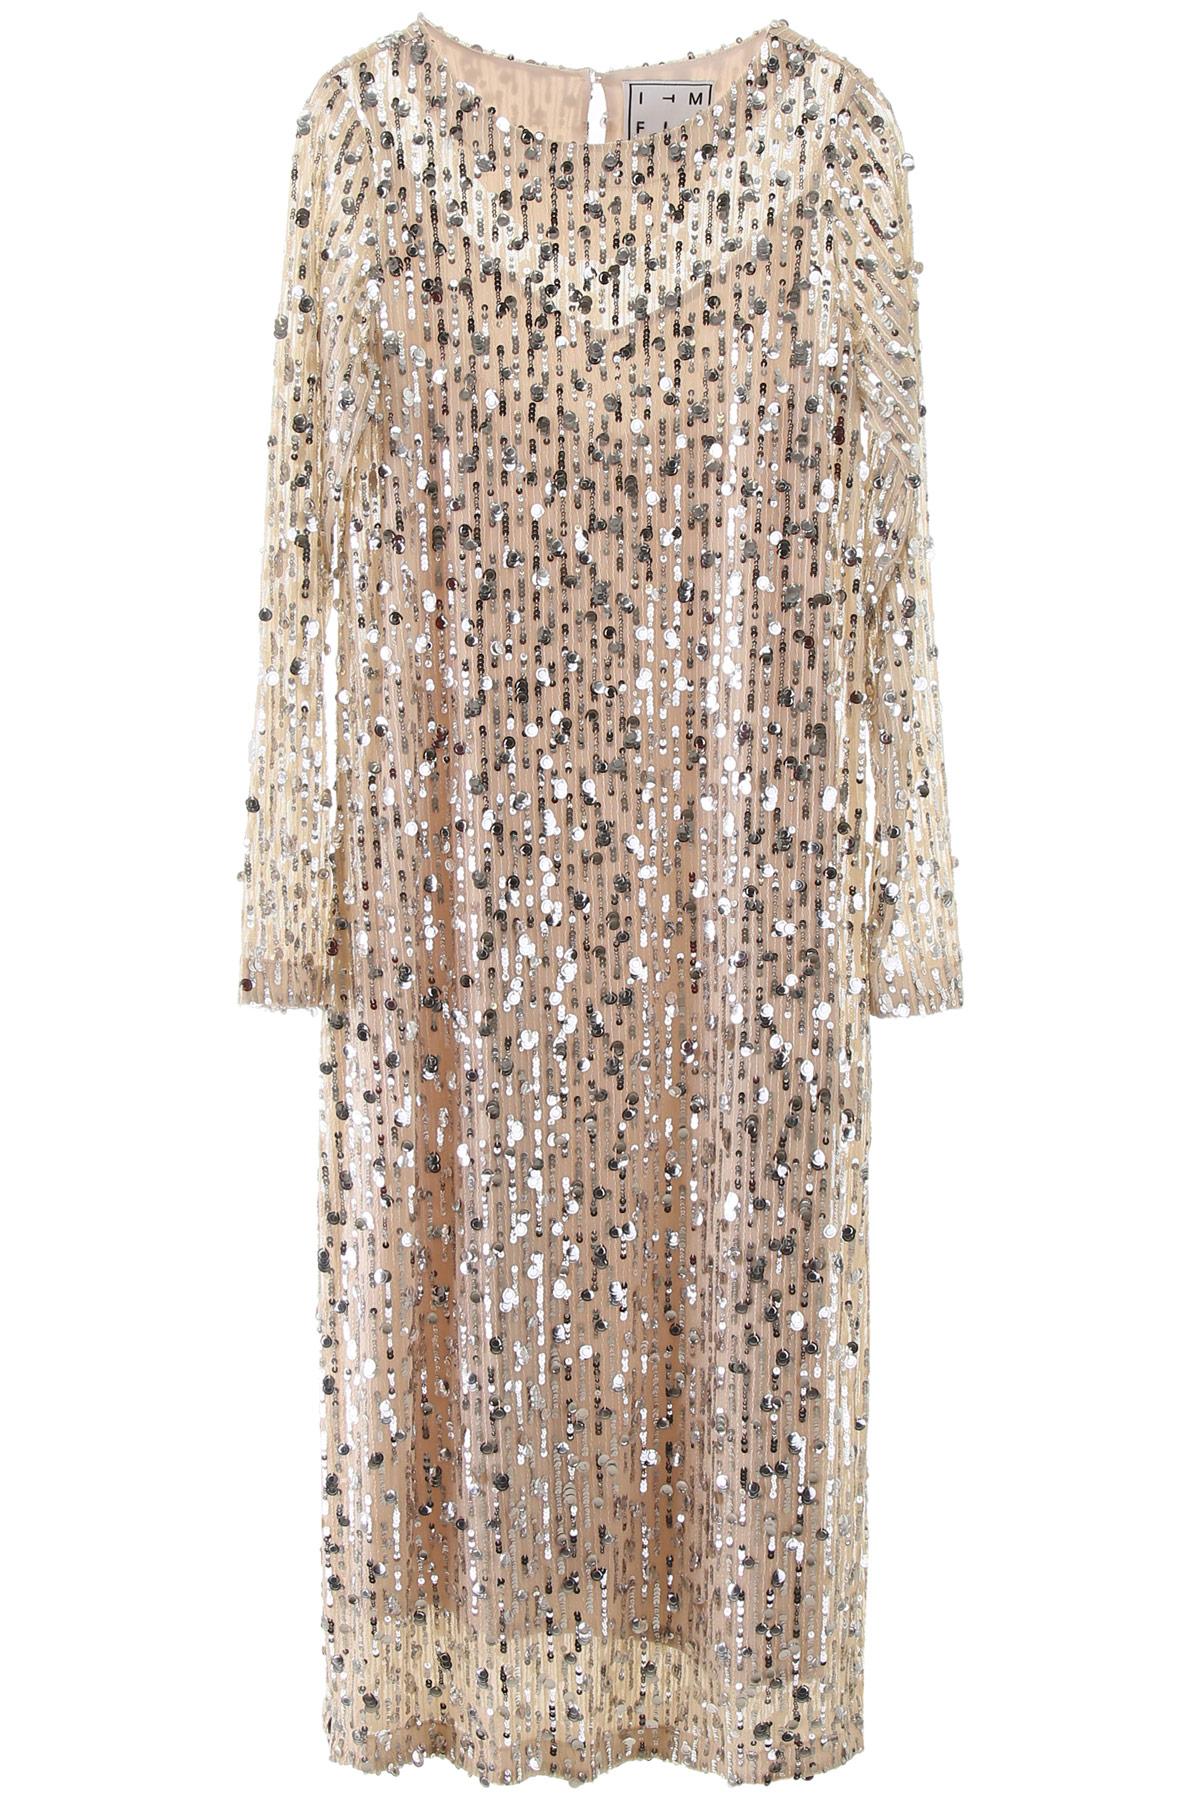 IN THE MOOD FOR LOVE CHRISTY MIDI DRESS WITH SEQUINS XS Beige, Silver